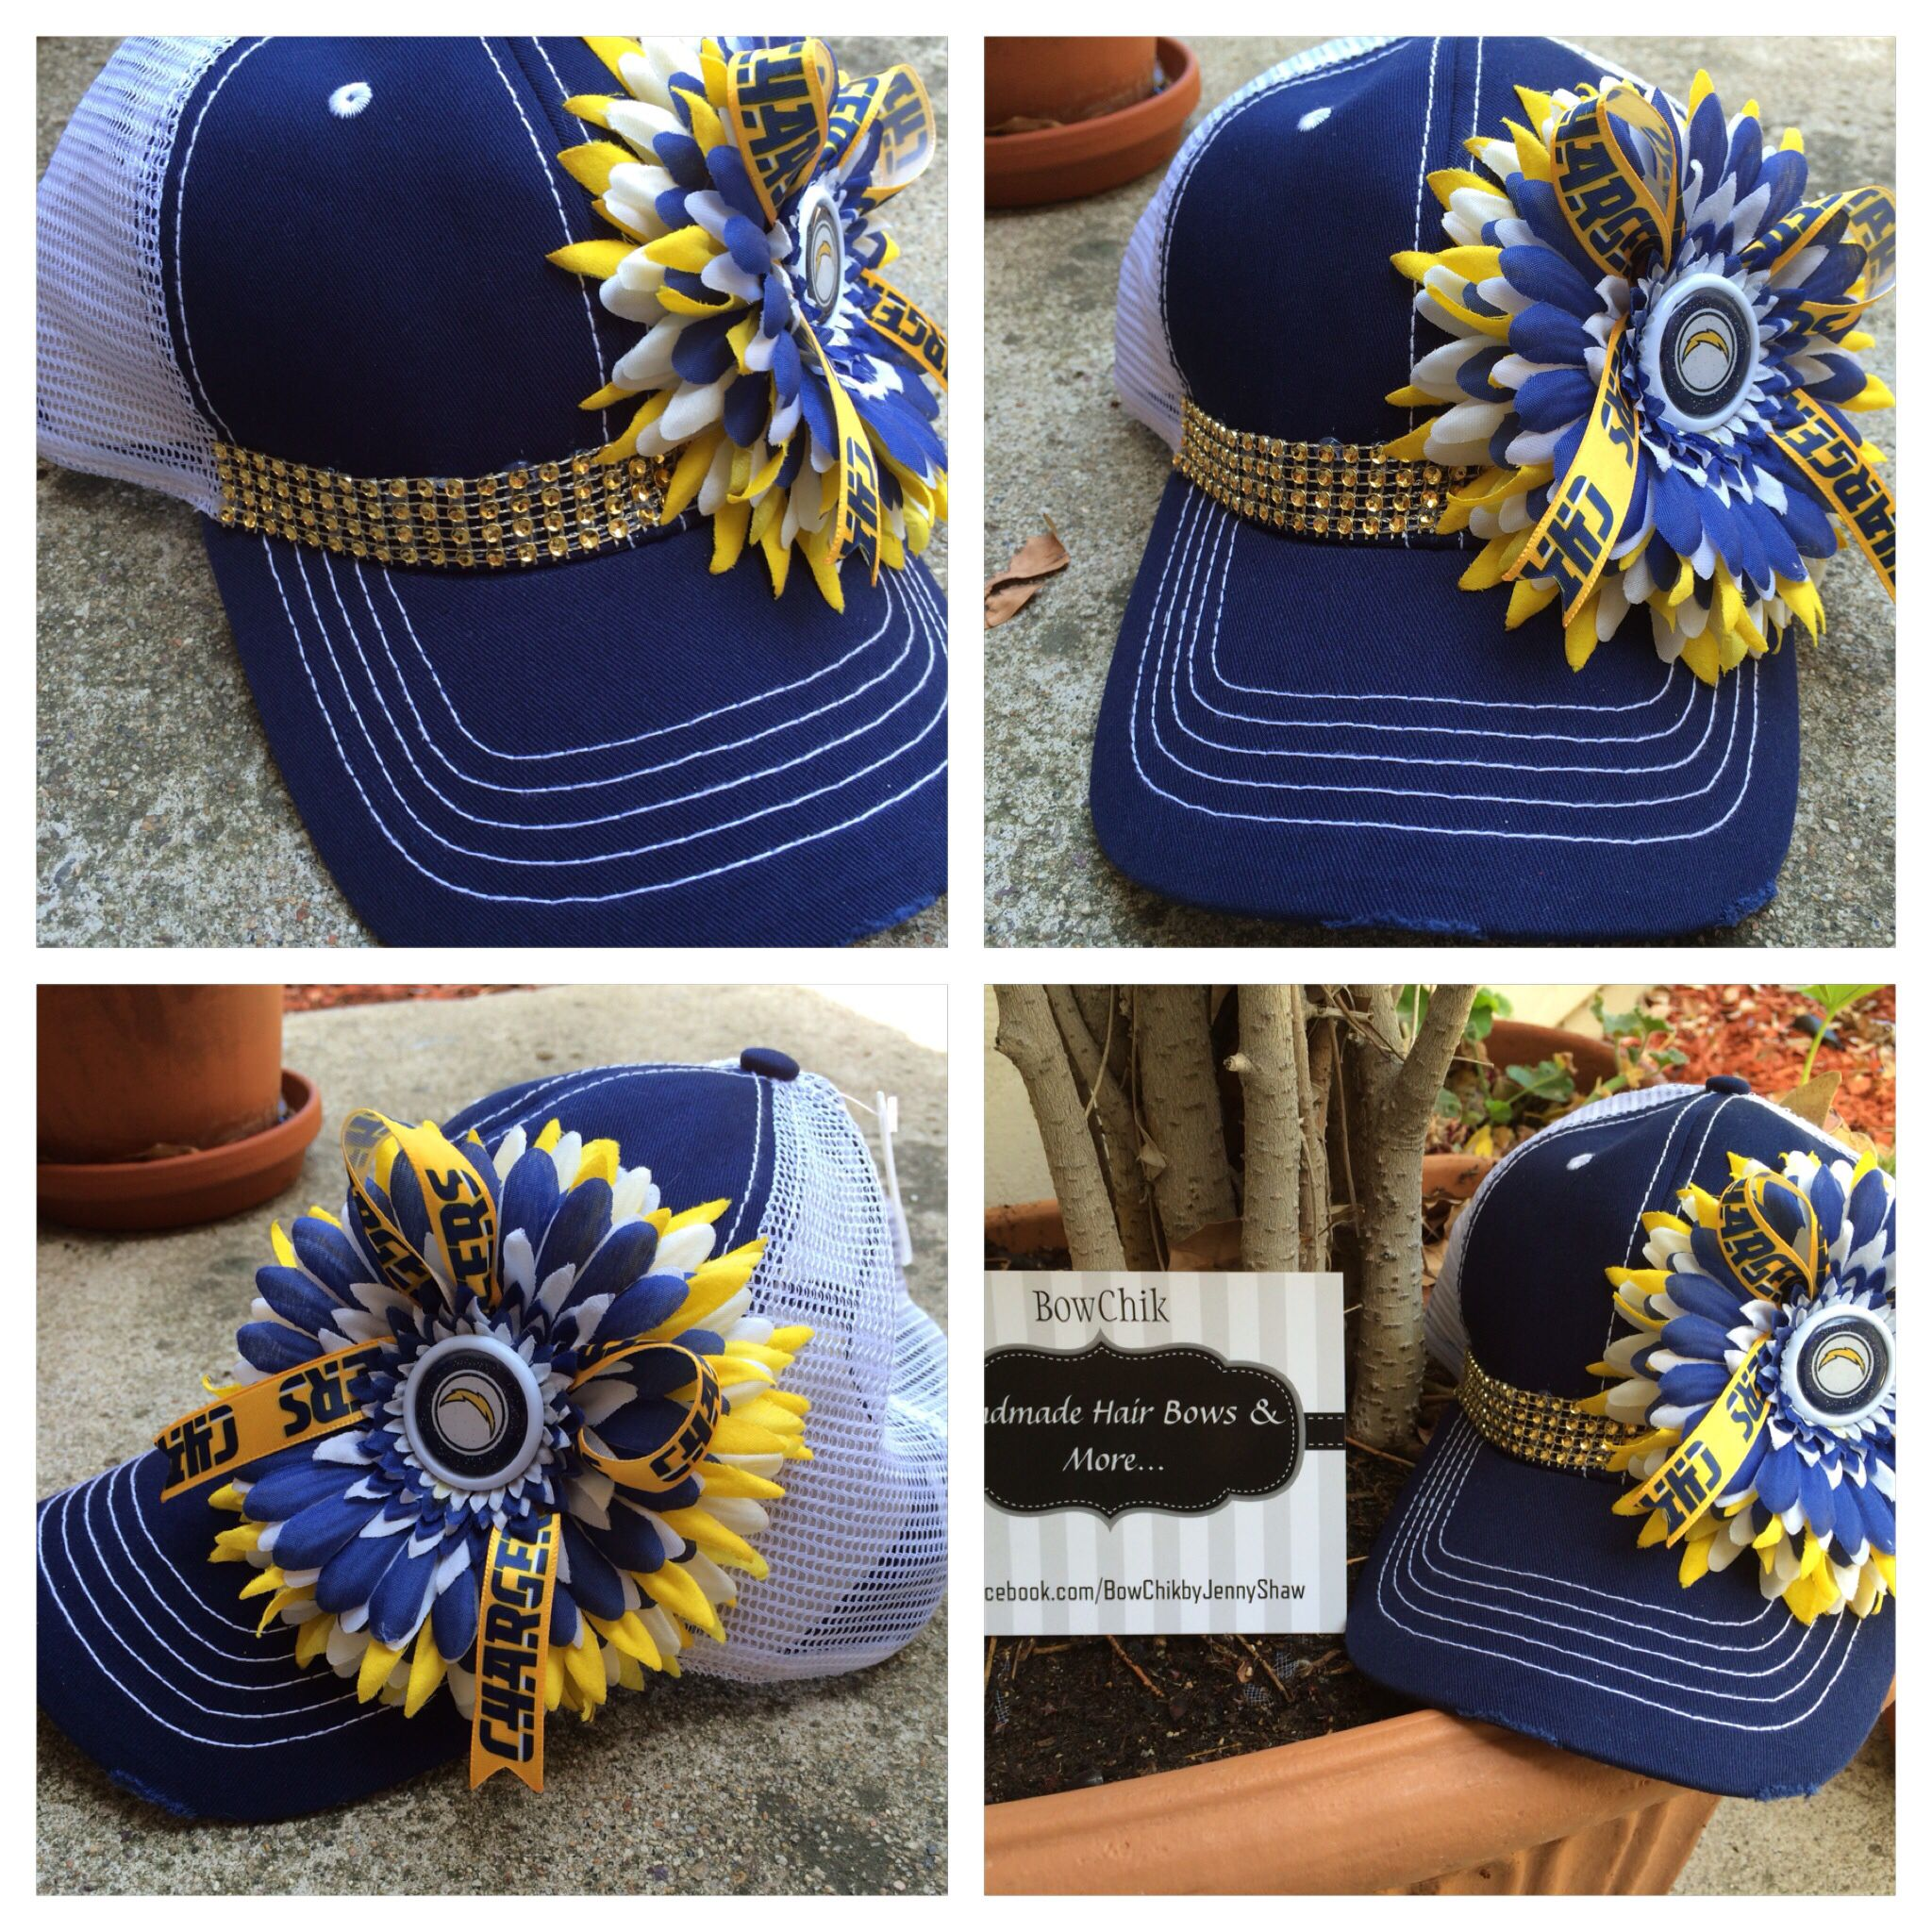 "Embellished ""trucker style"" SD CHARGER hat.. One size fits all, adjustable Velcro back $27.00 shipped.  www.facebook.com/BowChikbyJennyShaw"